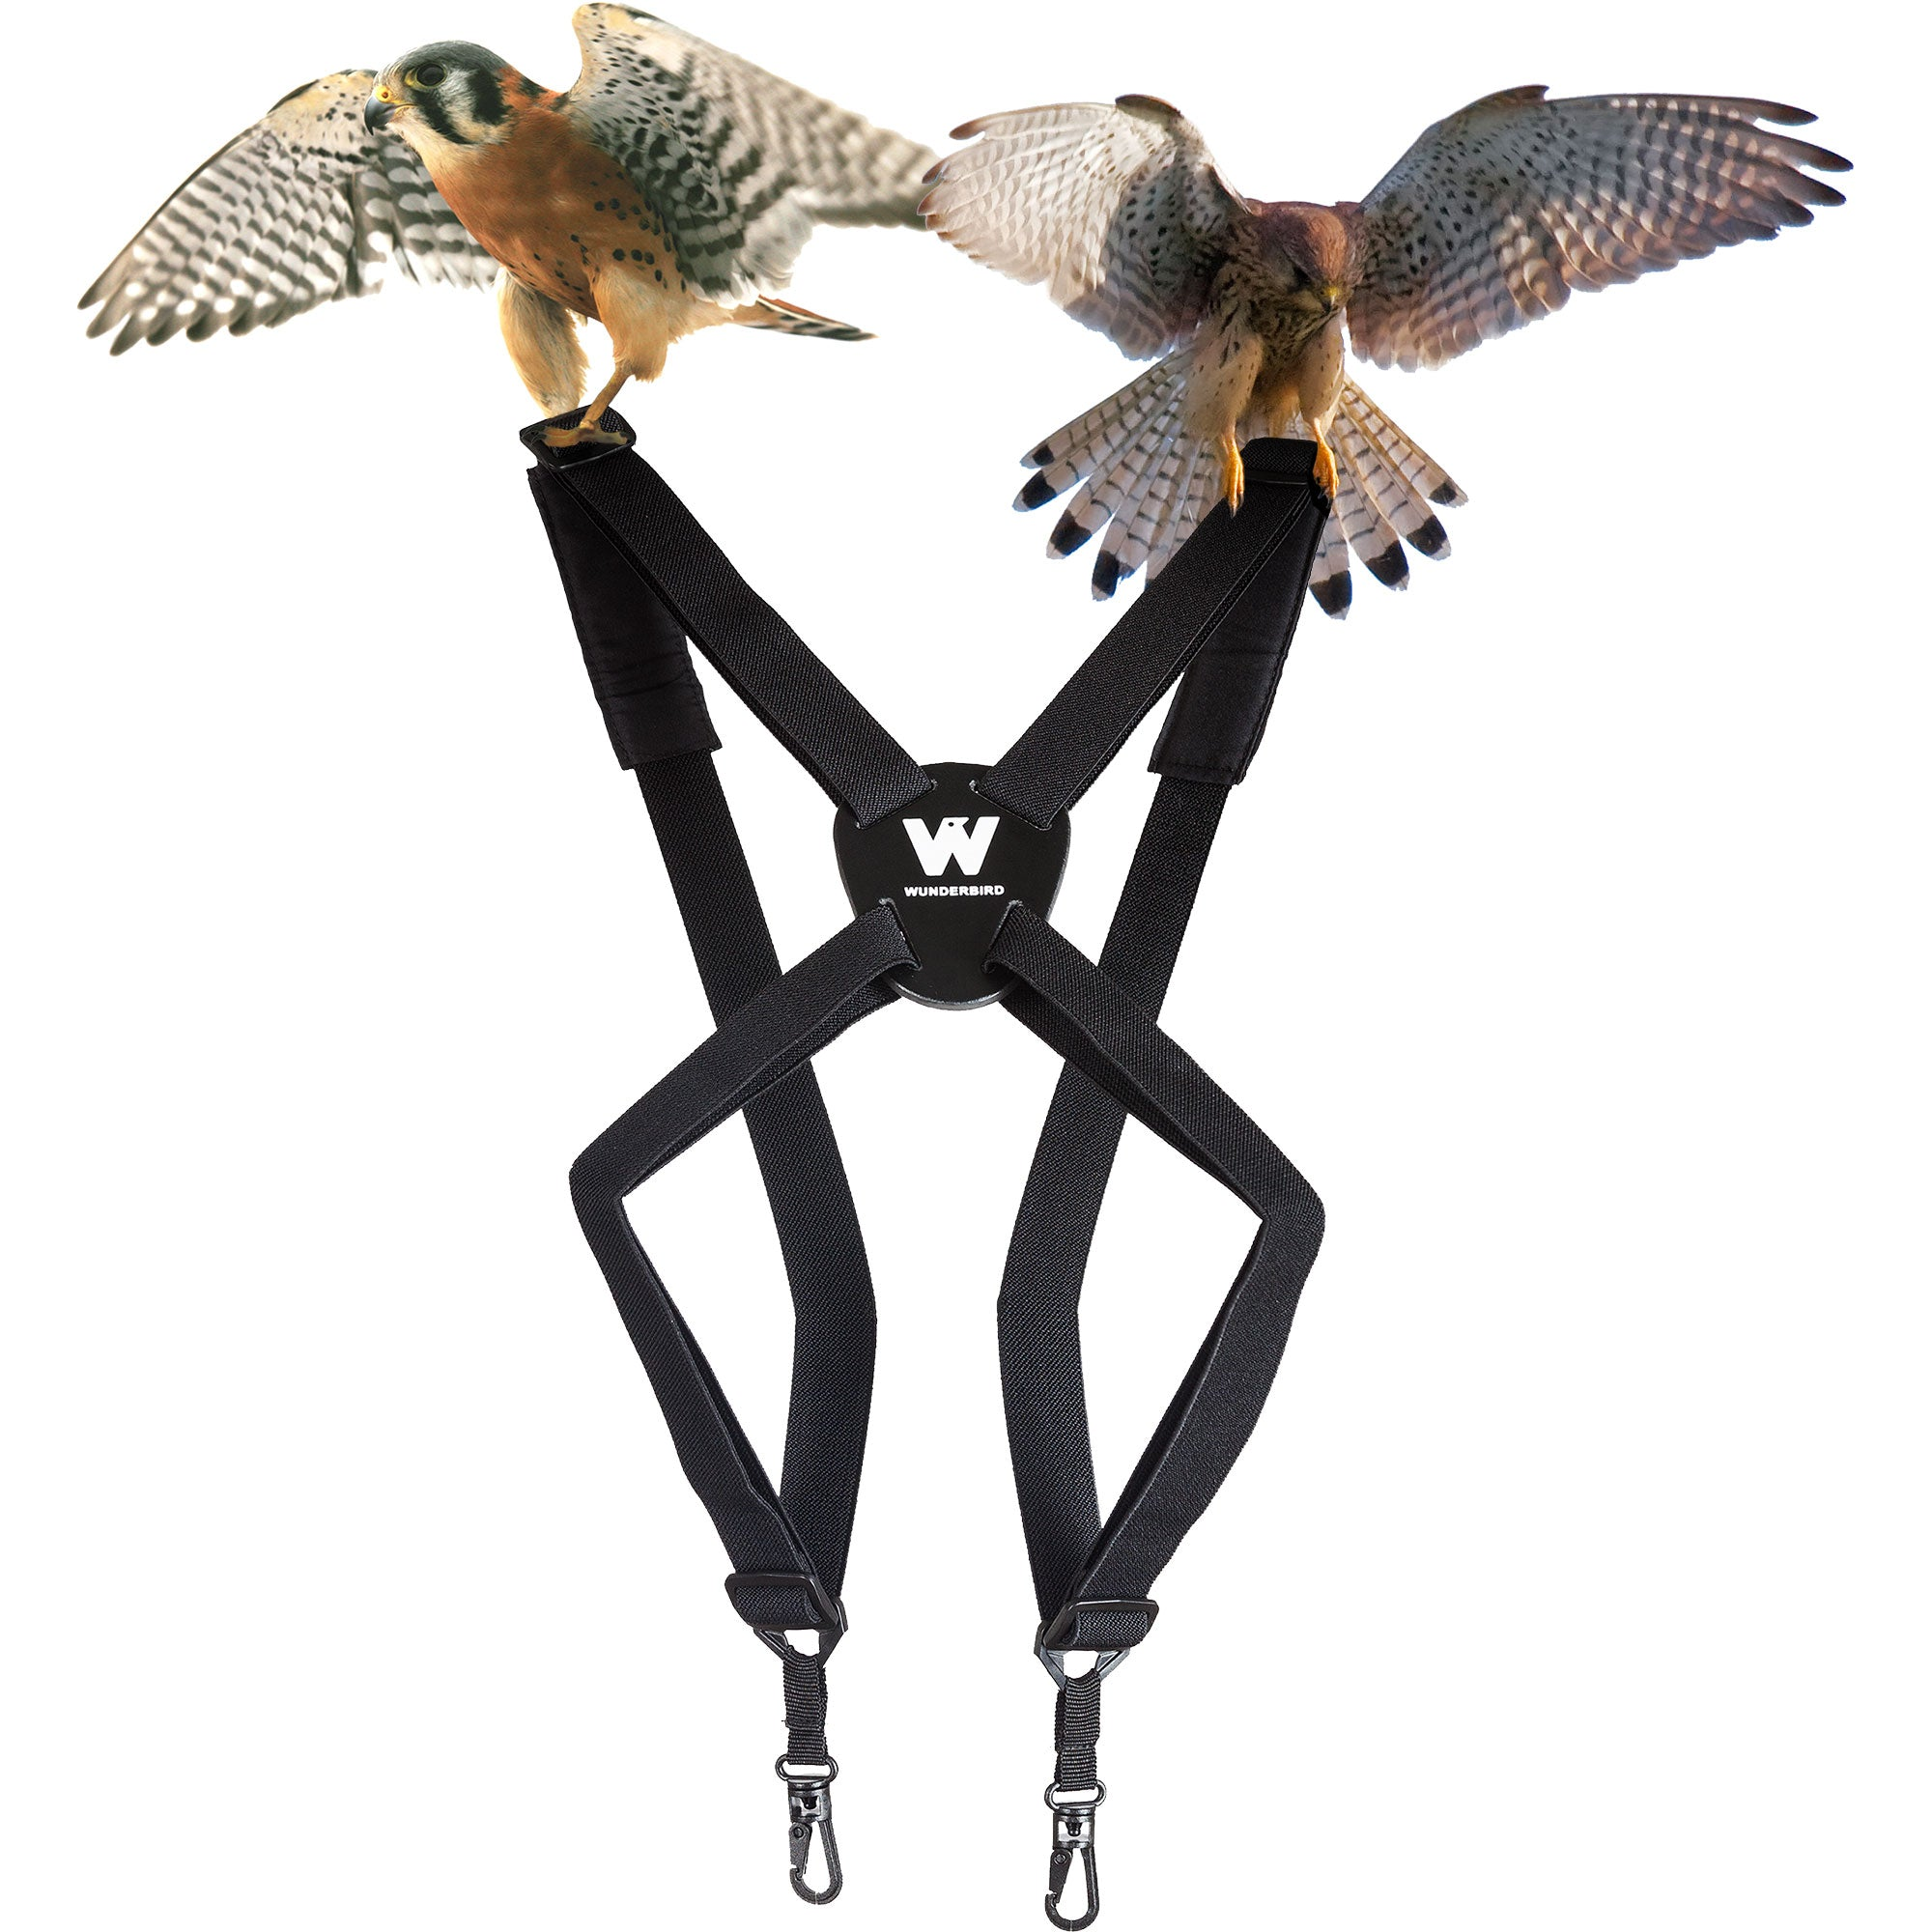 bird watching harness